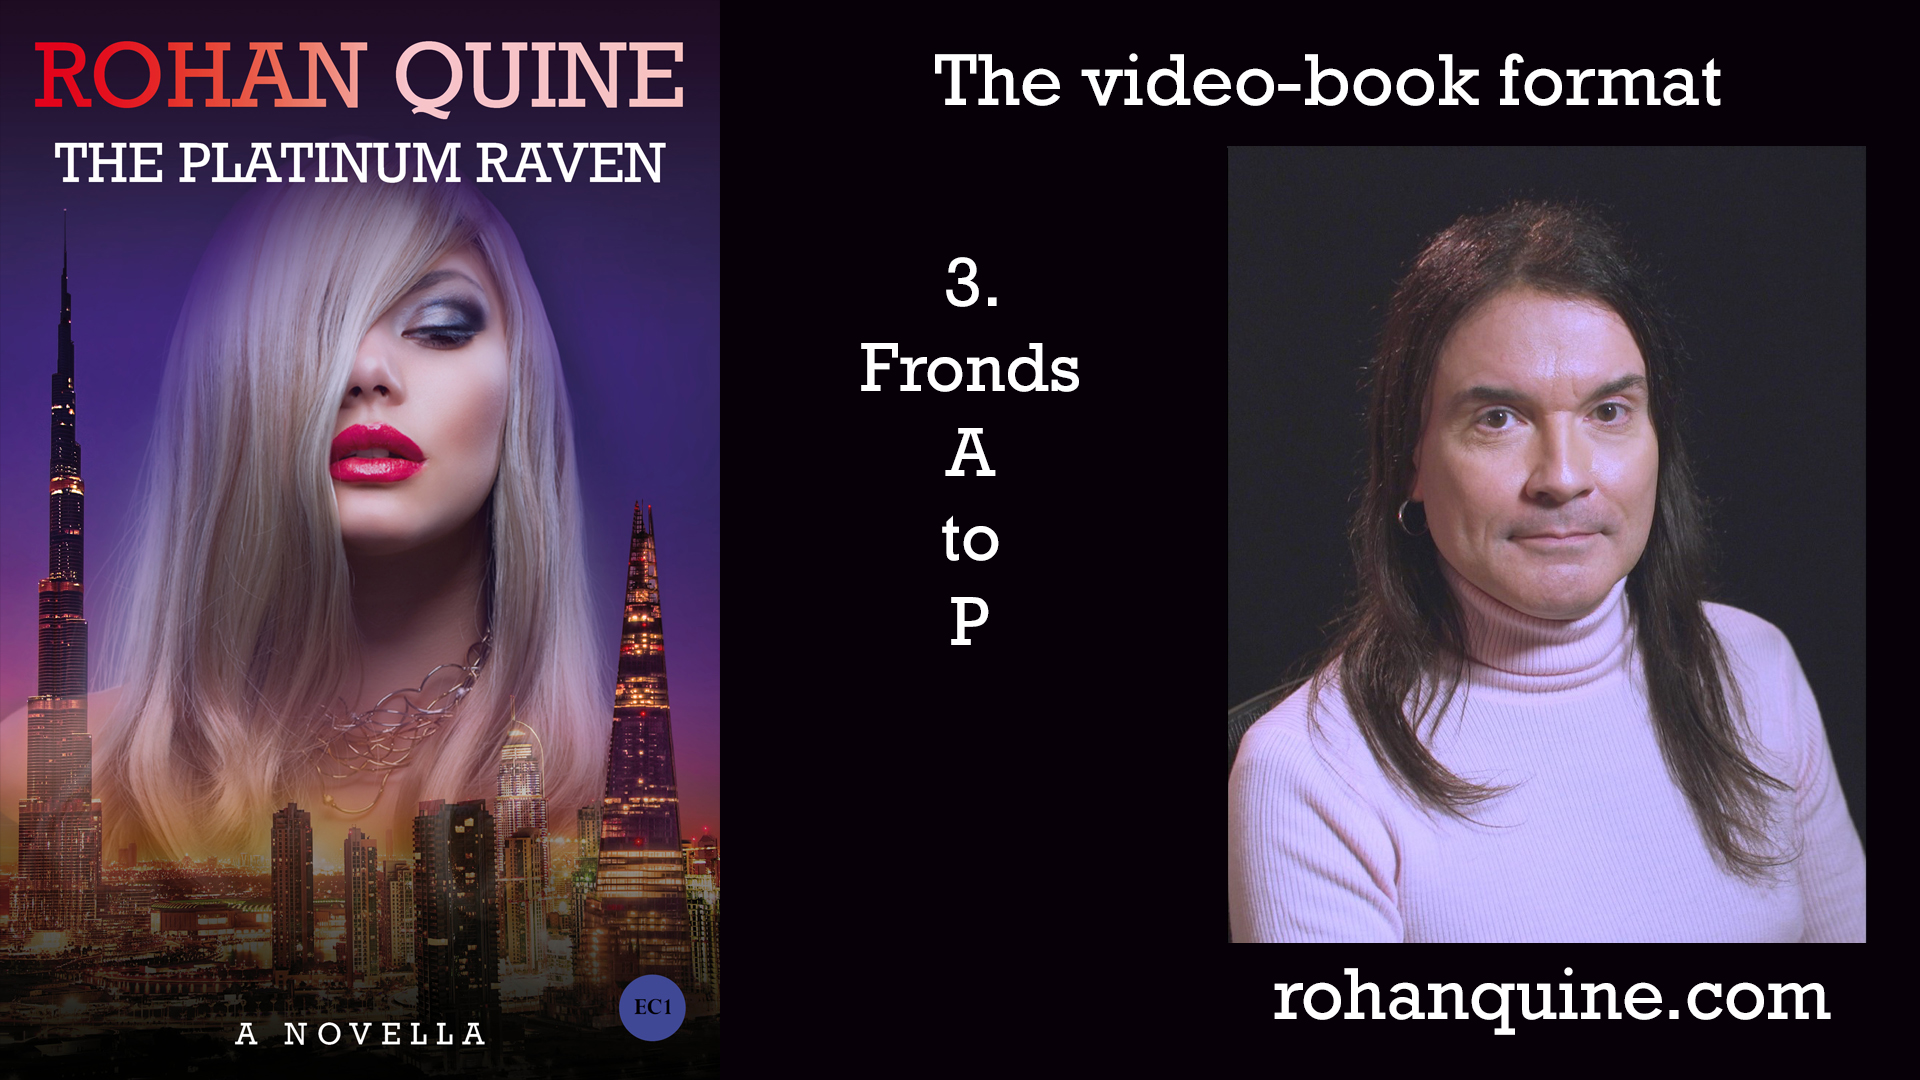 THE PLATINUM RAVEN by Rohan Quine - video-book format - chapter 3